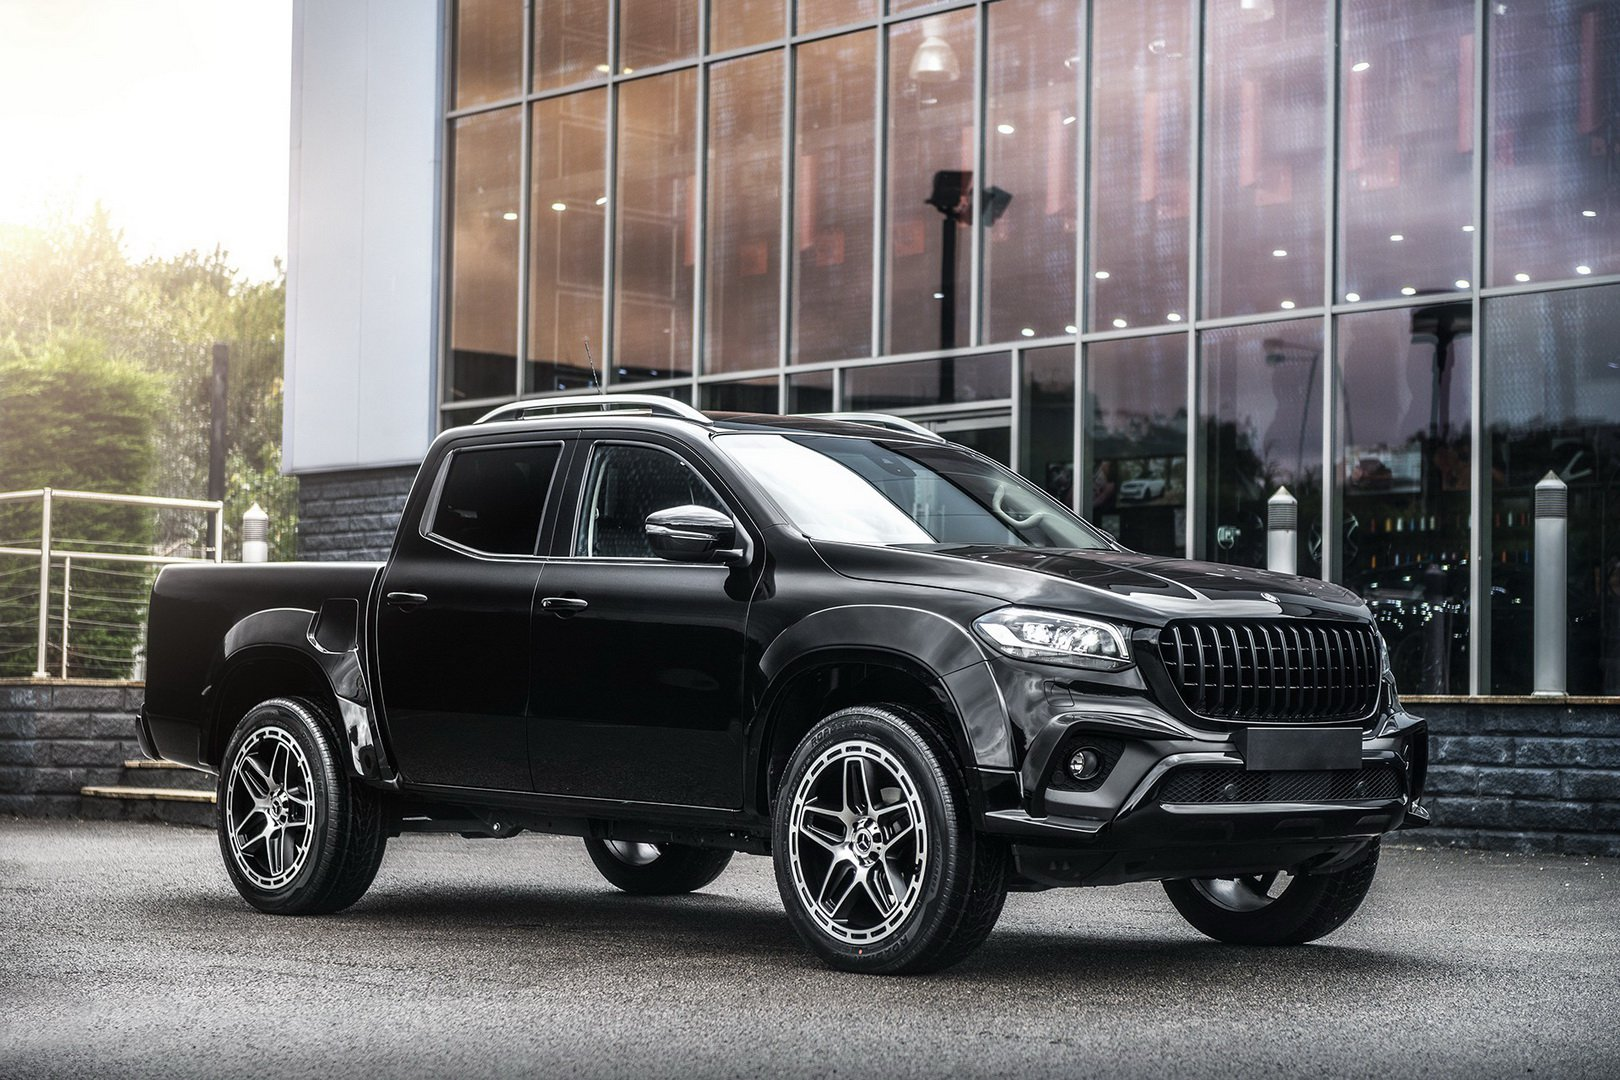 You may say that Polish tuner Carlex Design has the craziest stylistic makeover for the Mercedes-Benz X-Class pickup on the market (the 'crazy' definition expands as far as the €105,000 price tag, too). However, this specimen by Kahn Design is hardly less impressive, and at approximately €62,000, it is more affordable, too.